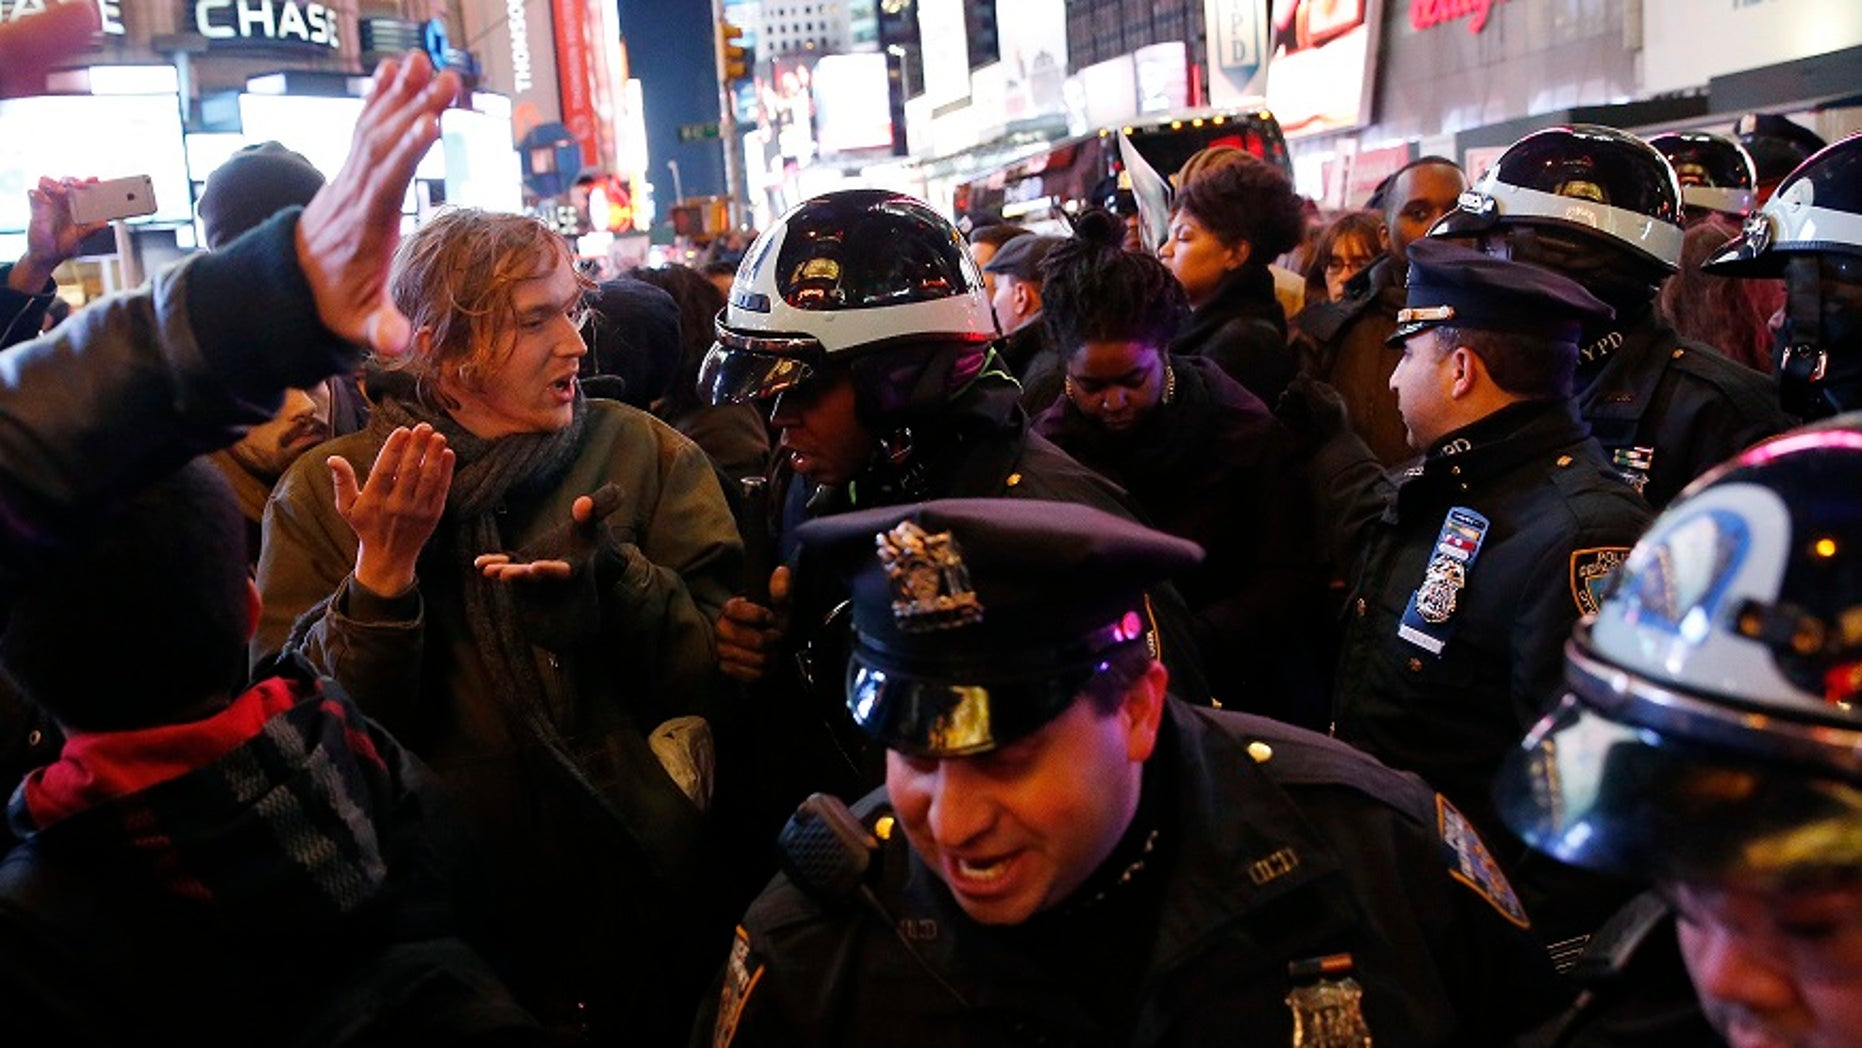 The lawsuit over the NYPD's use of sound cannons stemmed from protests over the chokehold death of Eric Garner in 2014.